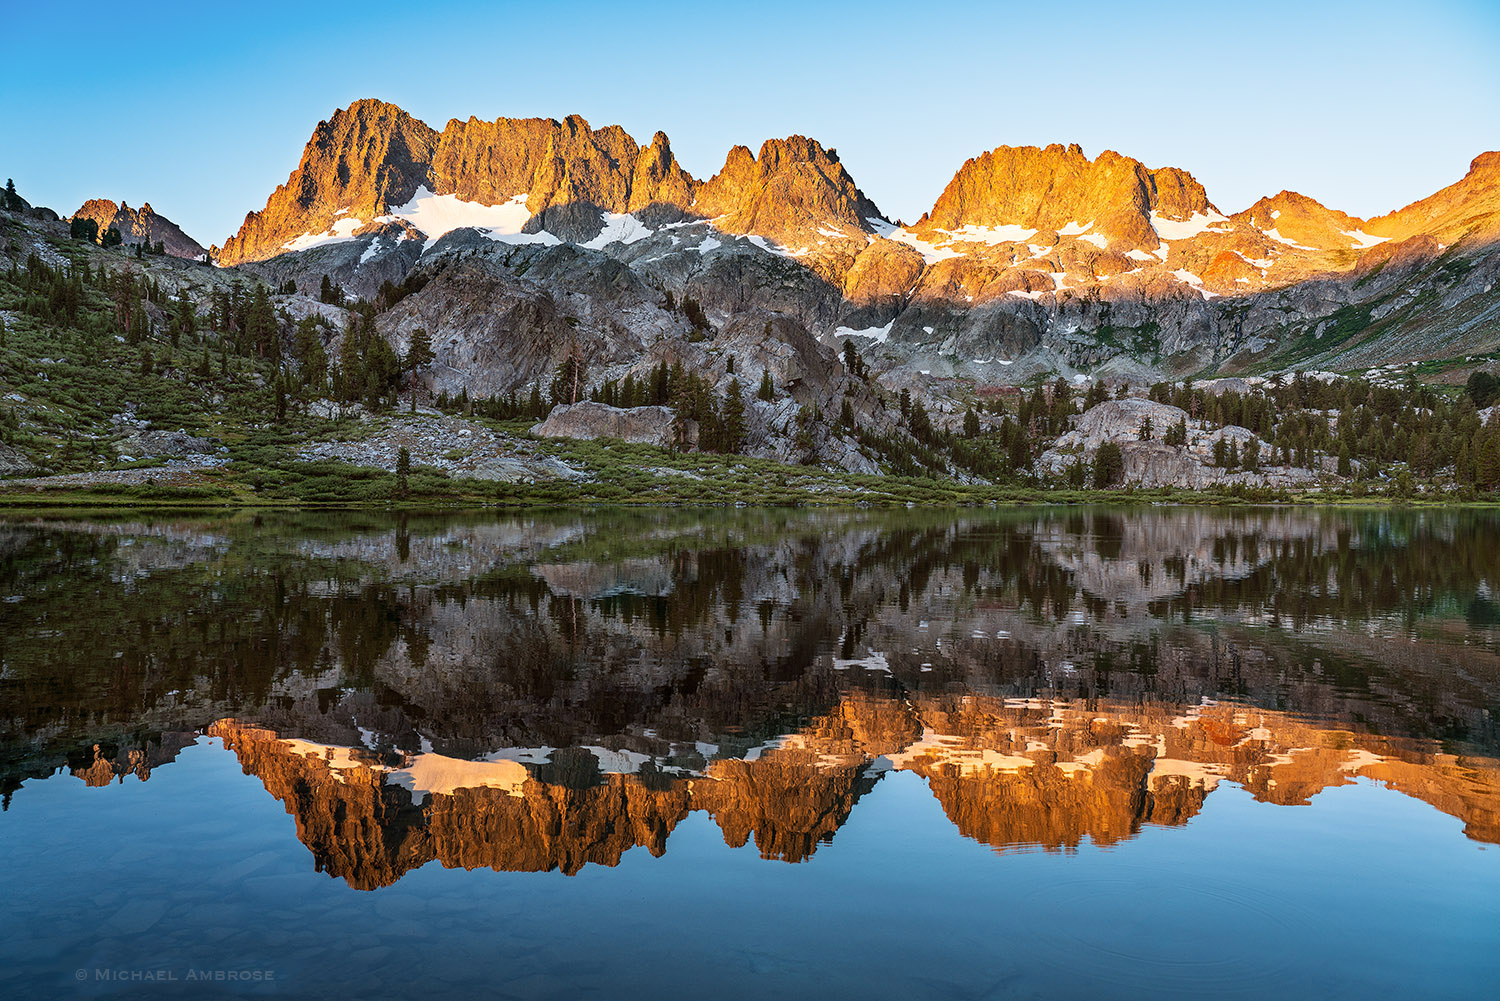 The Minarets reflect in Ediza lake as a perfect backcountry view in the Ansel Adams Wilderness and Mammoth Lakes Sierra.